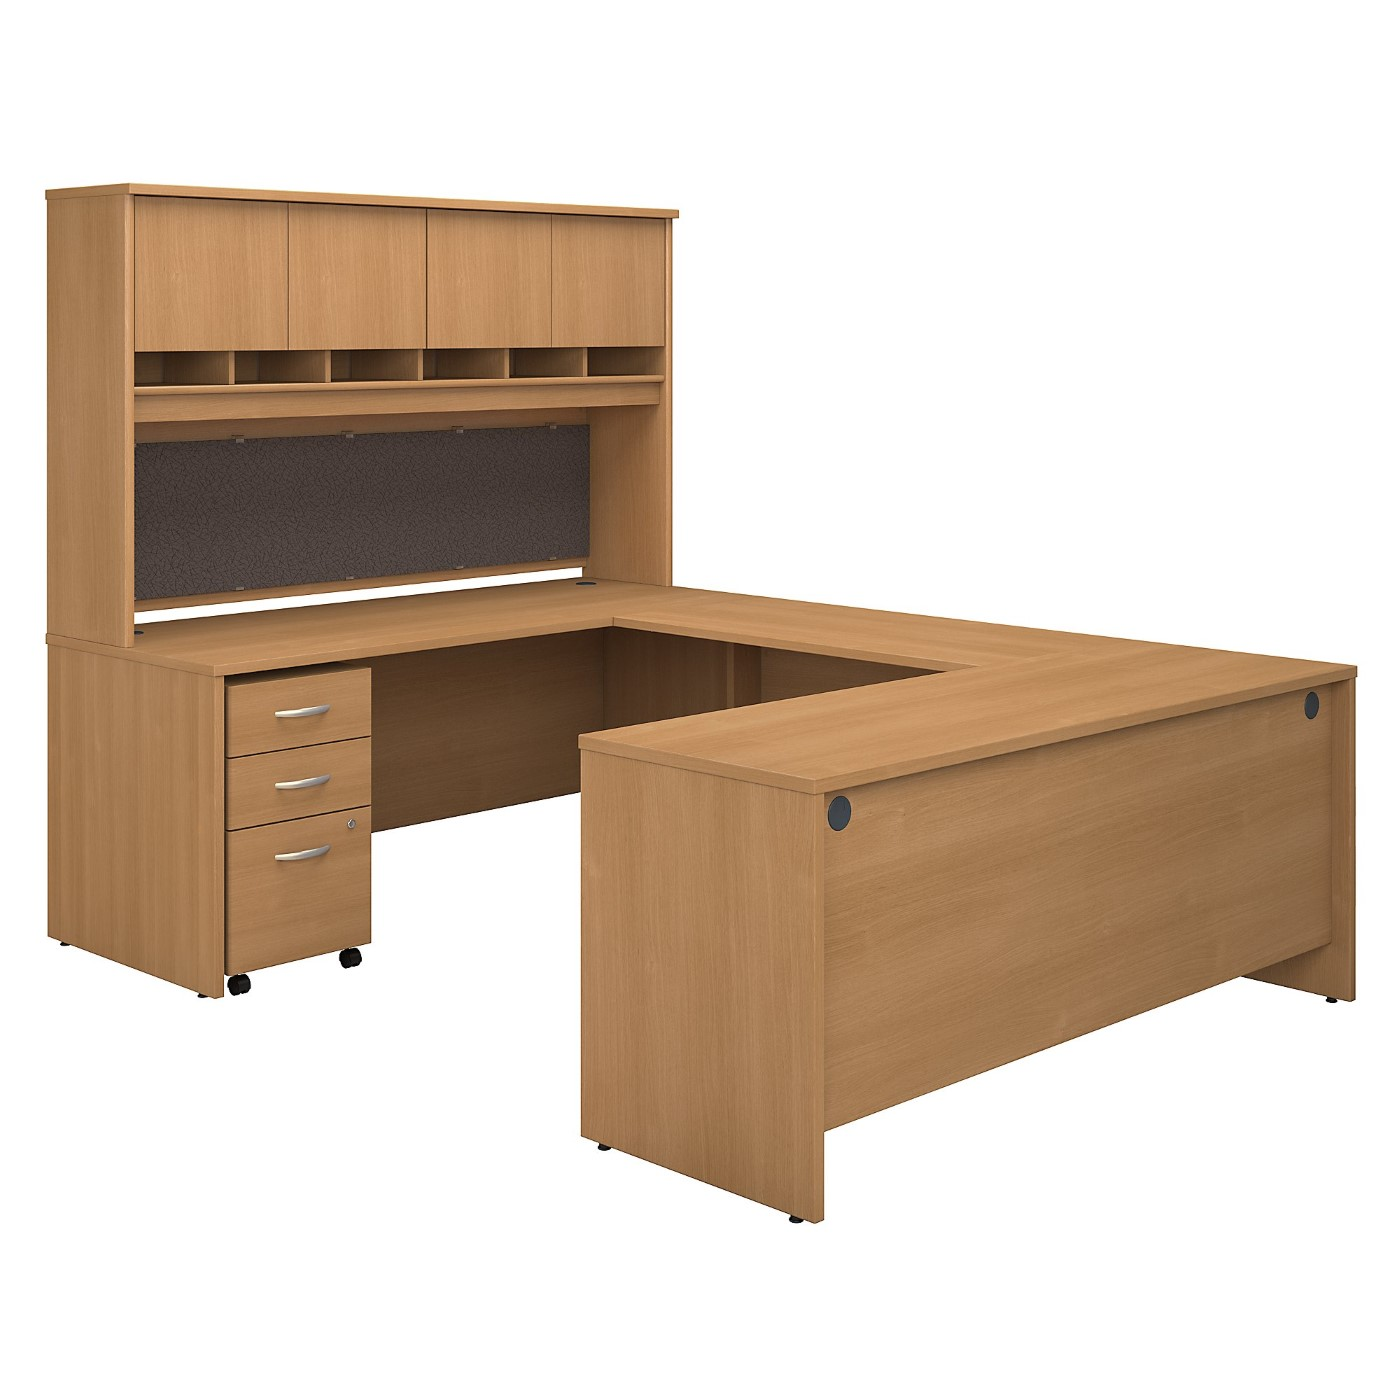 BUSH BUSINESS FURNITURE SERIES C 72W U SHAPED DESK WITH HUTCH AND STORAGE. FREE SHIPPING